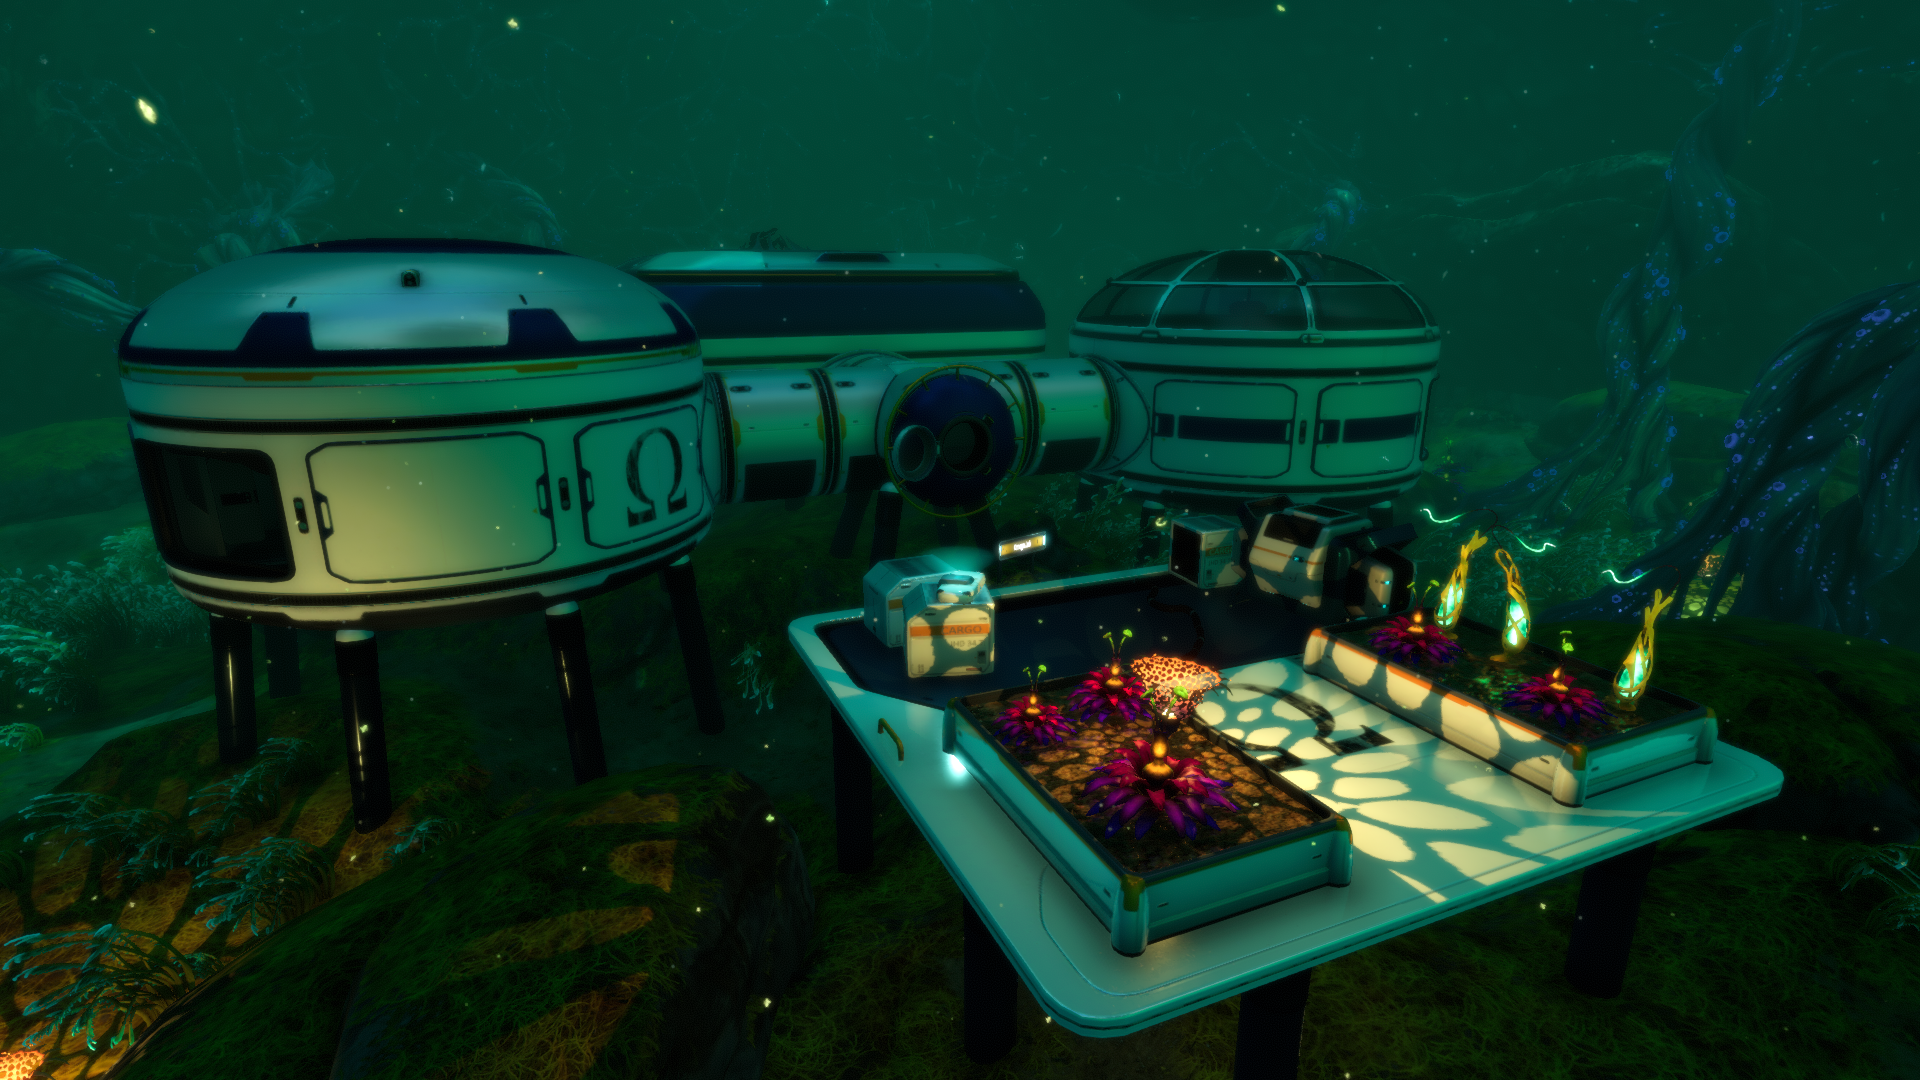 Subnautica Scanner Room Won't Stop Scanning : ⋆⋆⋆⋆⋆⋆⋆⋆⋆⋆⋆⋆⋆⋆⋆⋆⋆⋆⋆⋆⋆⋆⋆⋆⋆⋆⋆⋆⋆⋆⋆⋆⋆⋆⋆⋆⋆⋆⋆⋆⋆⋆ subnautica gameplay season 1 ► trclips.com/p/pl3fdf3o7uifwttx0cggkkxwo0bkainkfg subnautica gameplay.